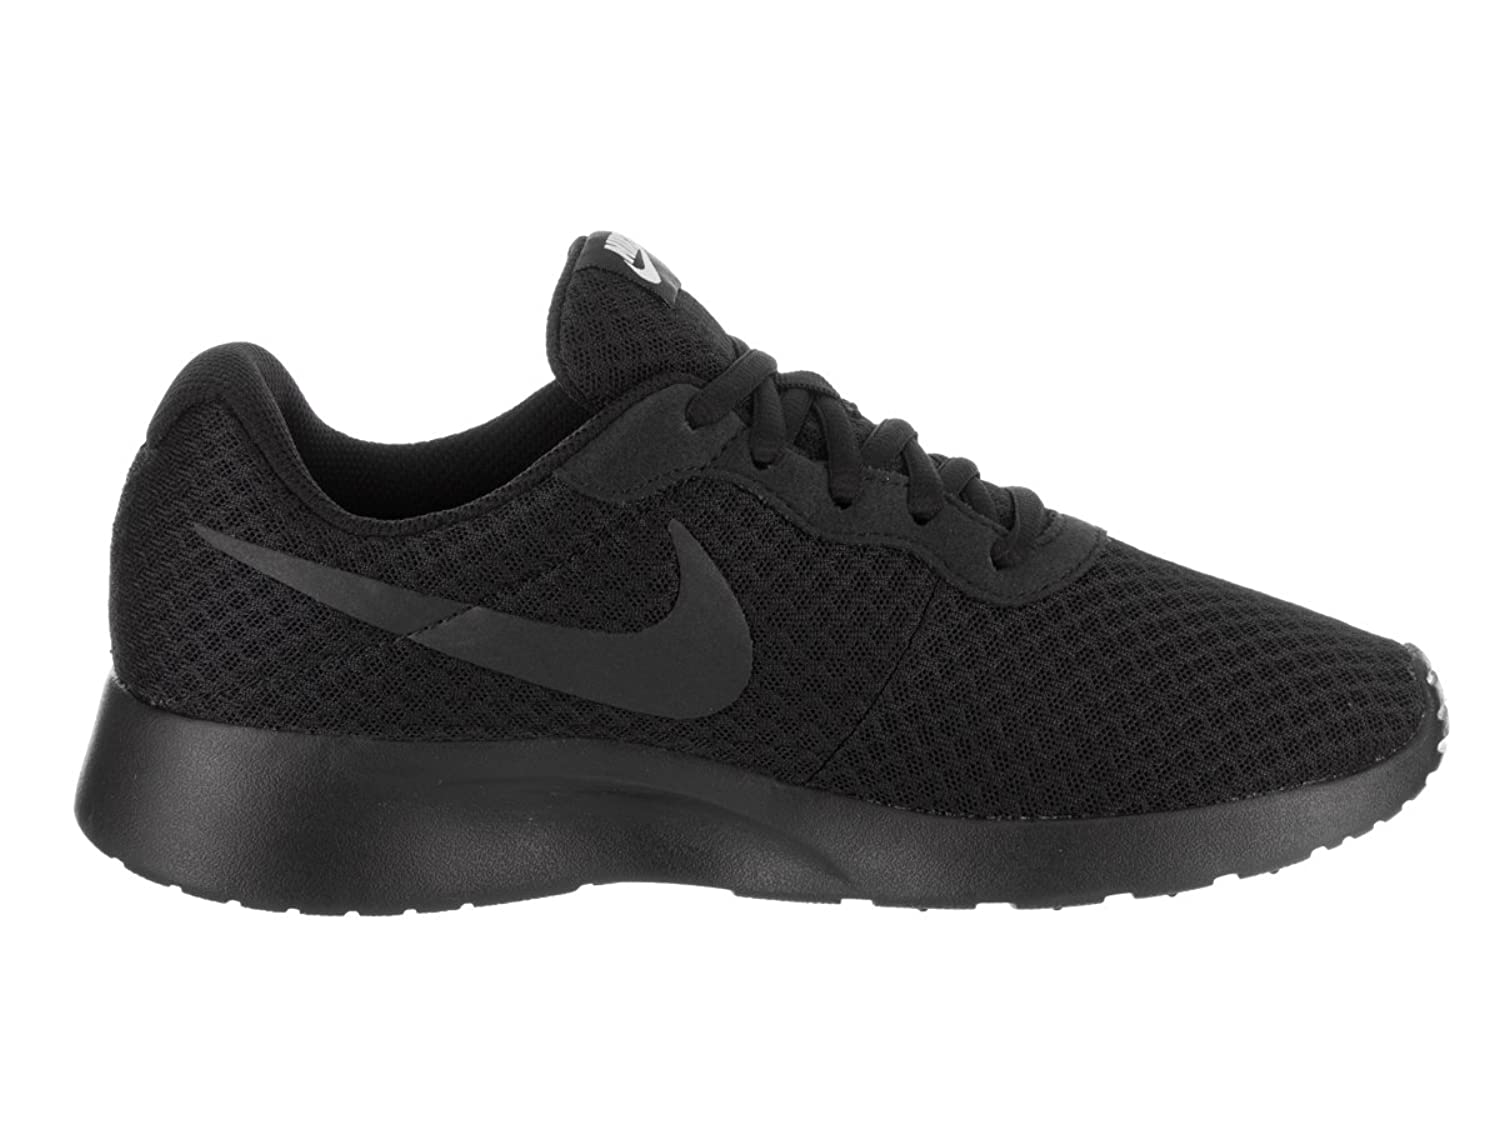 NIKE Women's Tanjun Black/Black/White Running Shoe